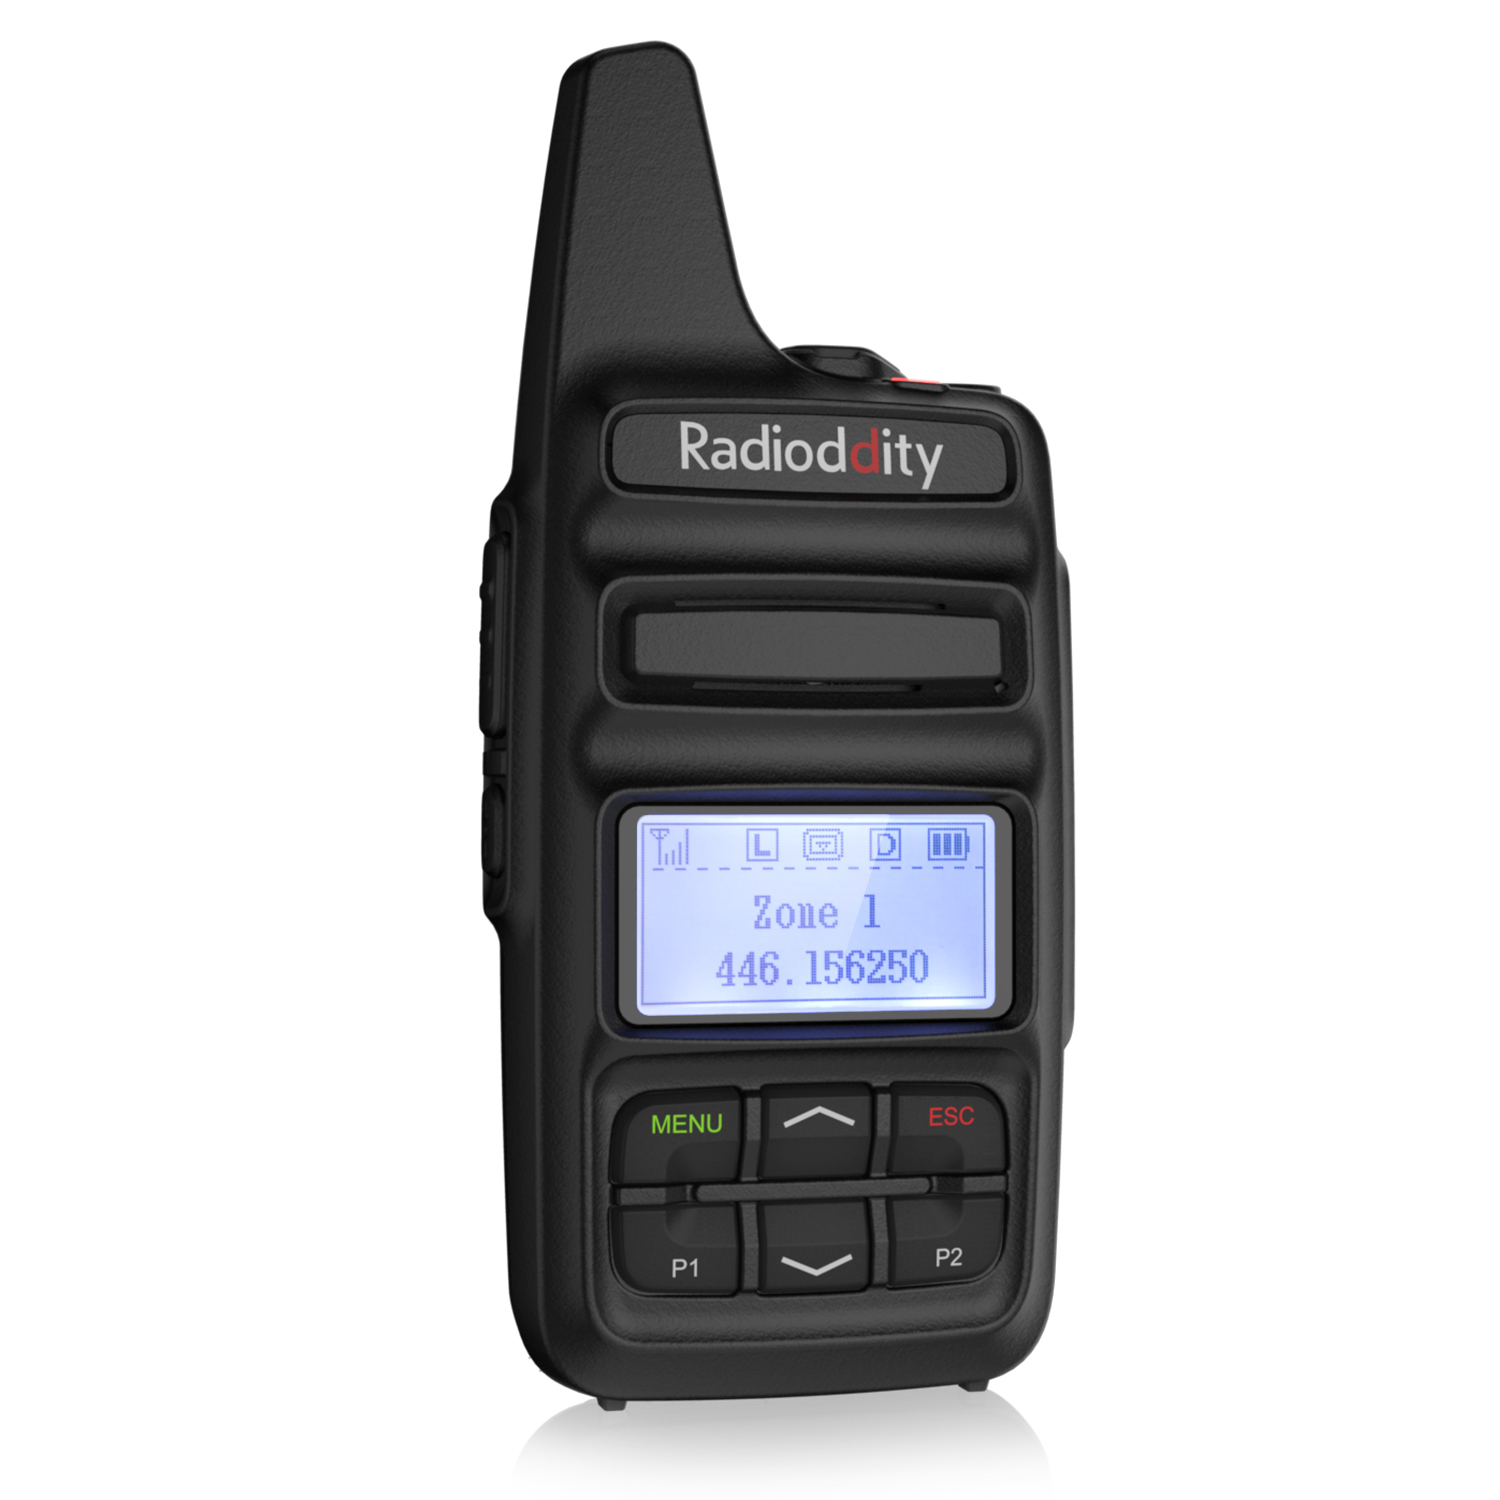 Radioddity GD-73 A/E Mini <font><b>DMR</b></font> UHF/PMR IP54 USB Program & Charge 2600mAh SMS <font><b>Hotspot</b></font> Use 2W 0.5W Custom Key Two Way Radio image